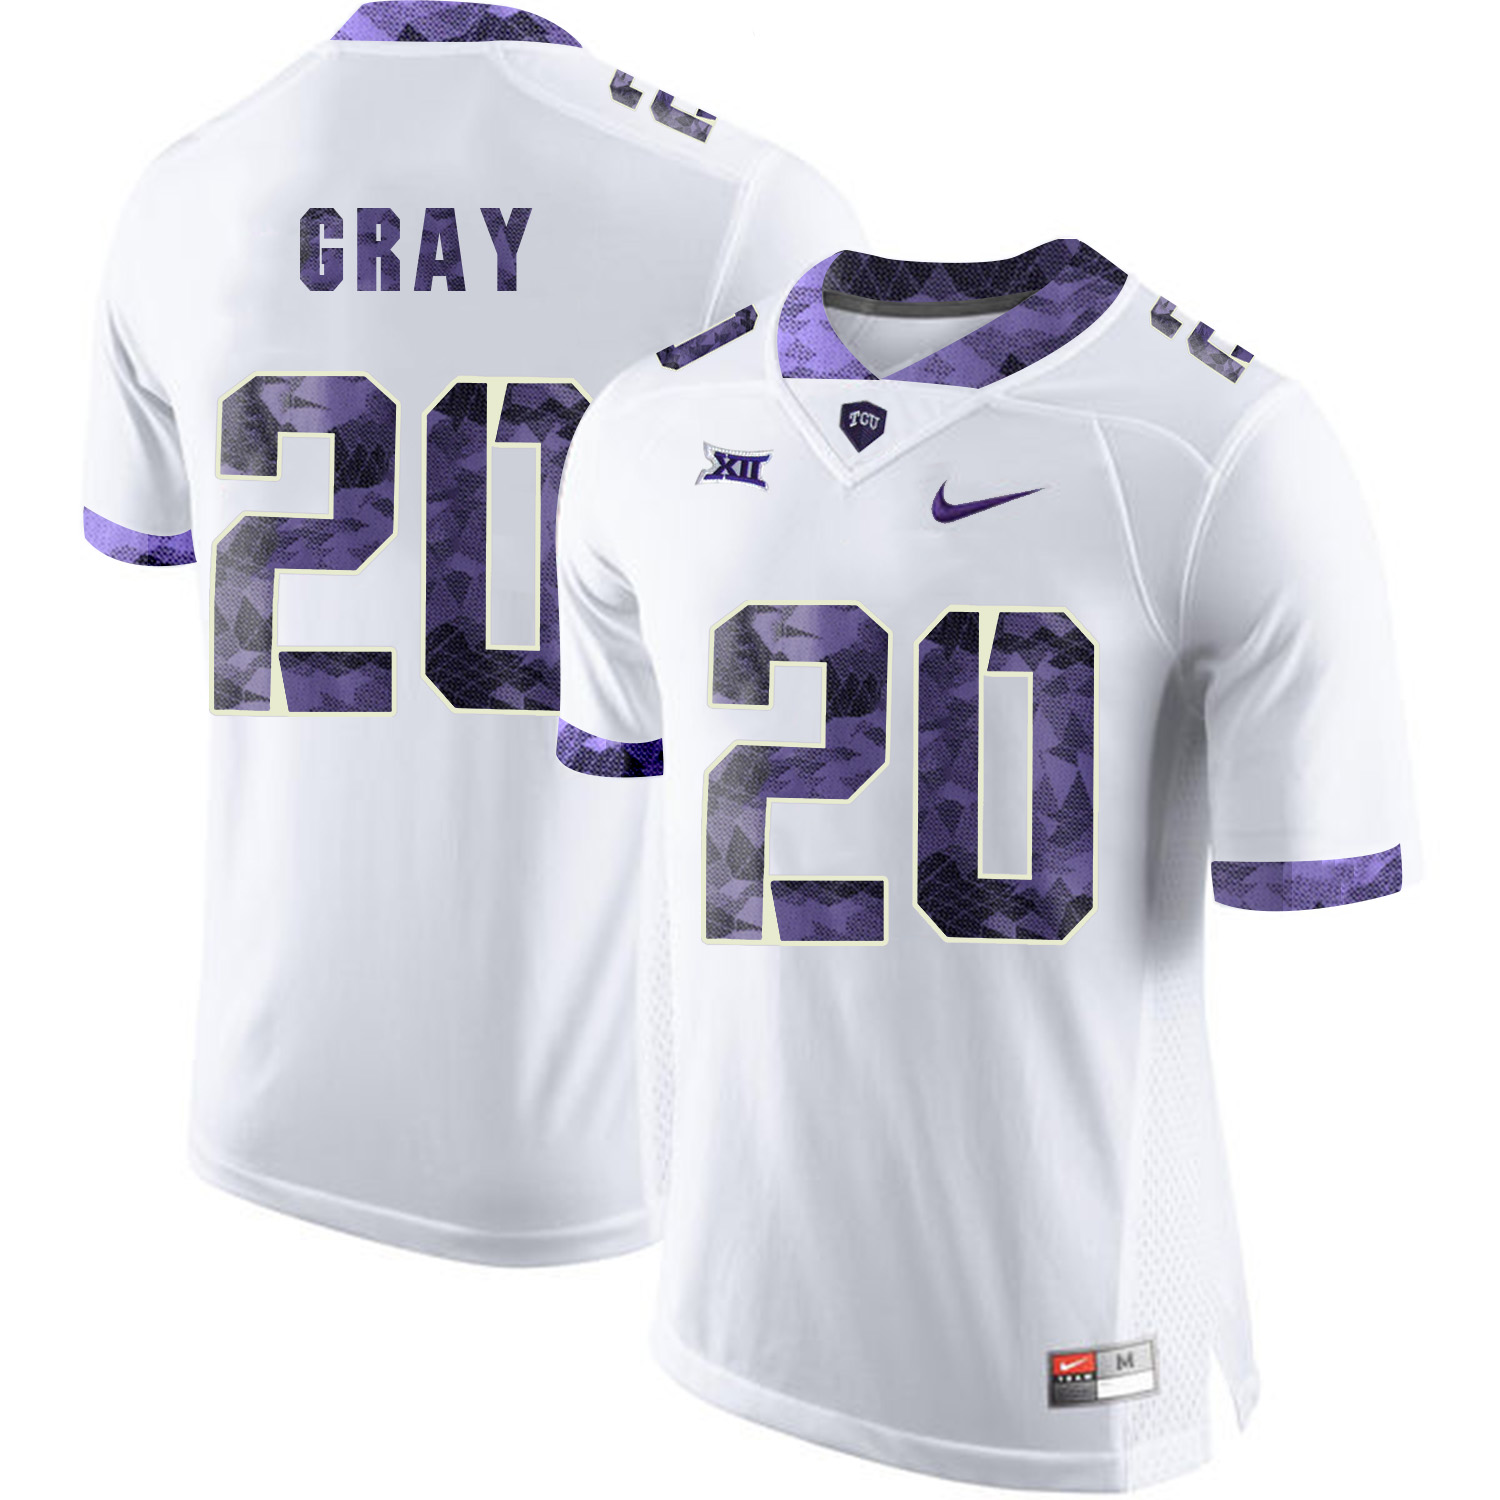 TCU Horned Frogs 20 Deante Gray White Print College Football Limited Jersey